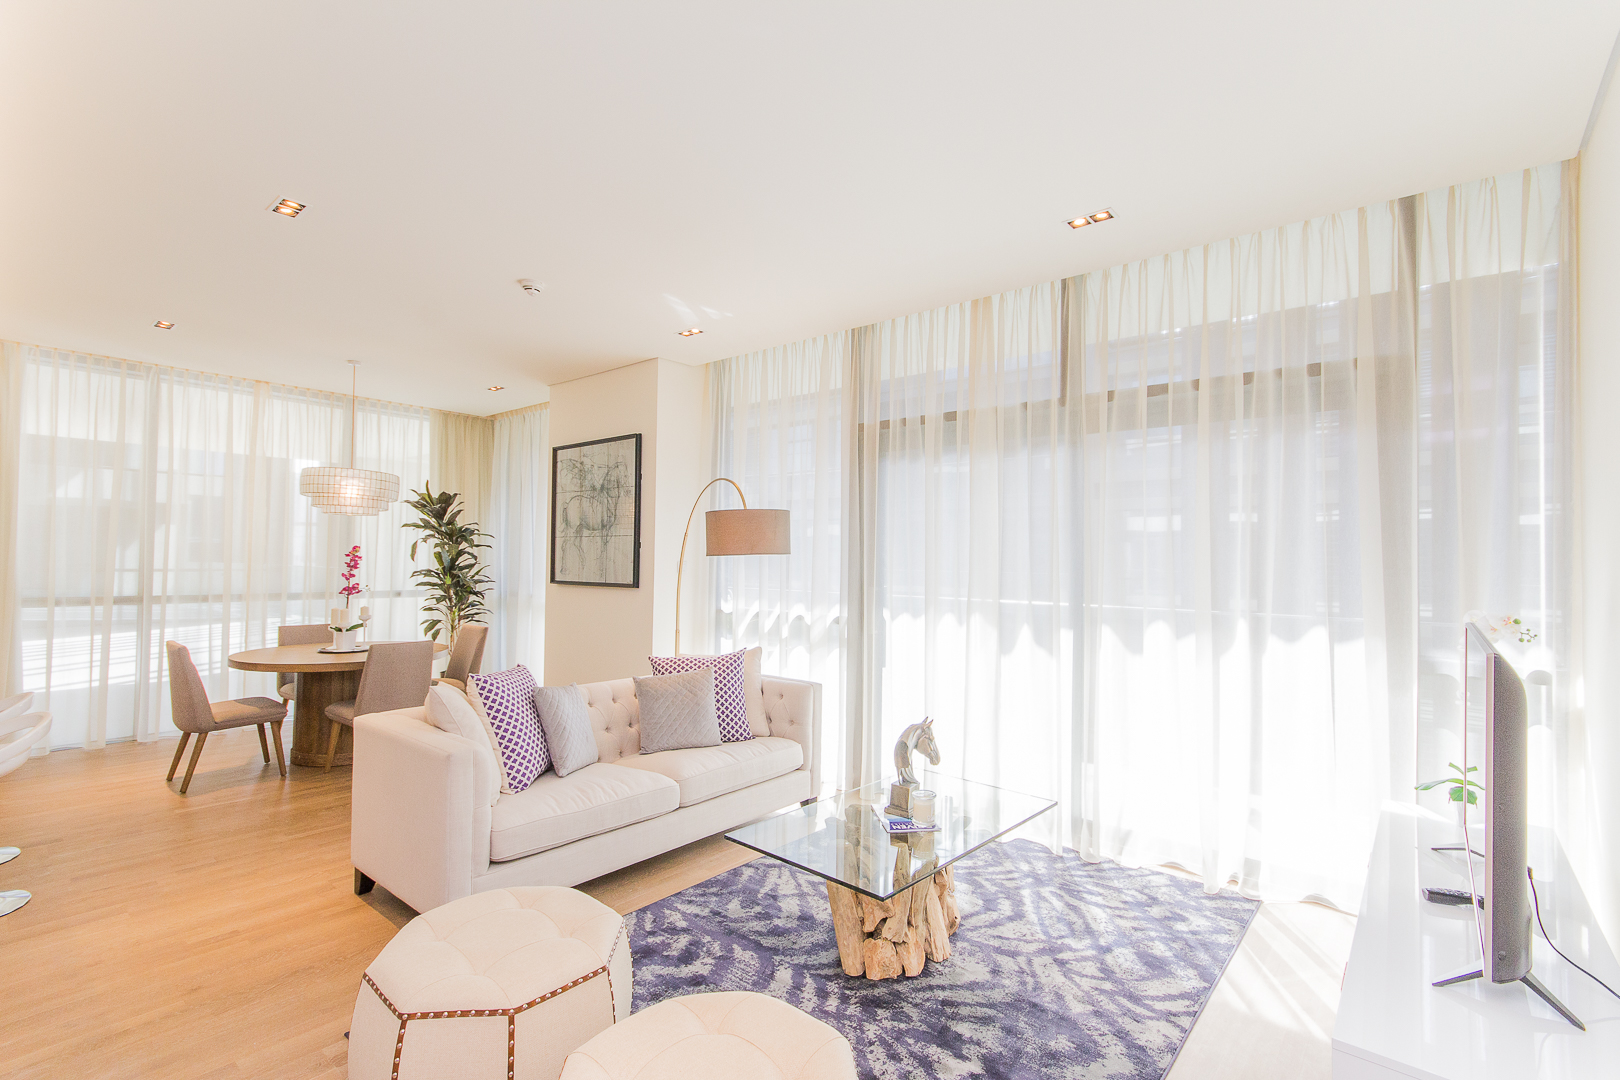 Charming 1 BR in City Walk #307 photo 21149011